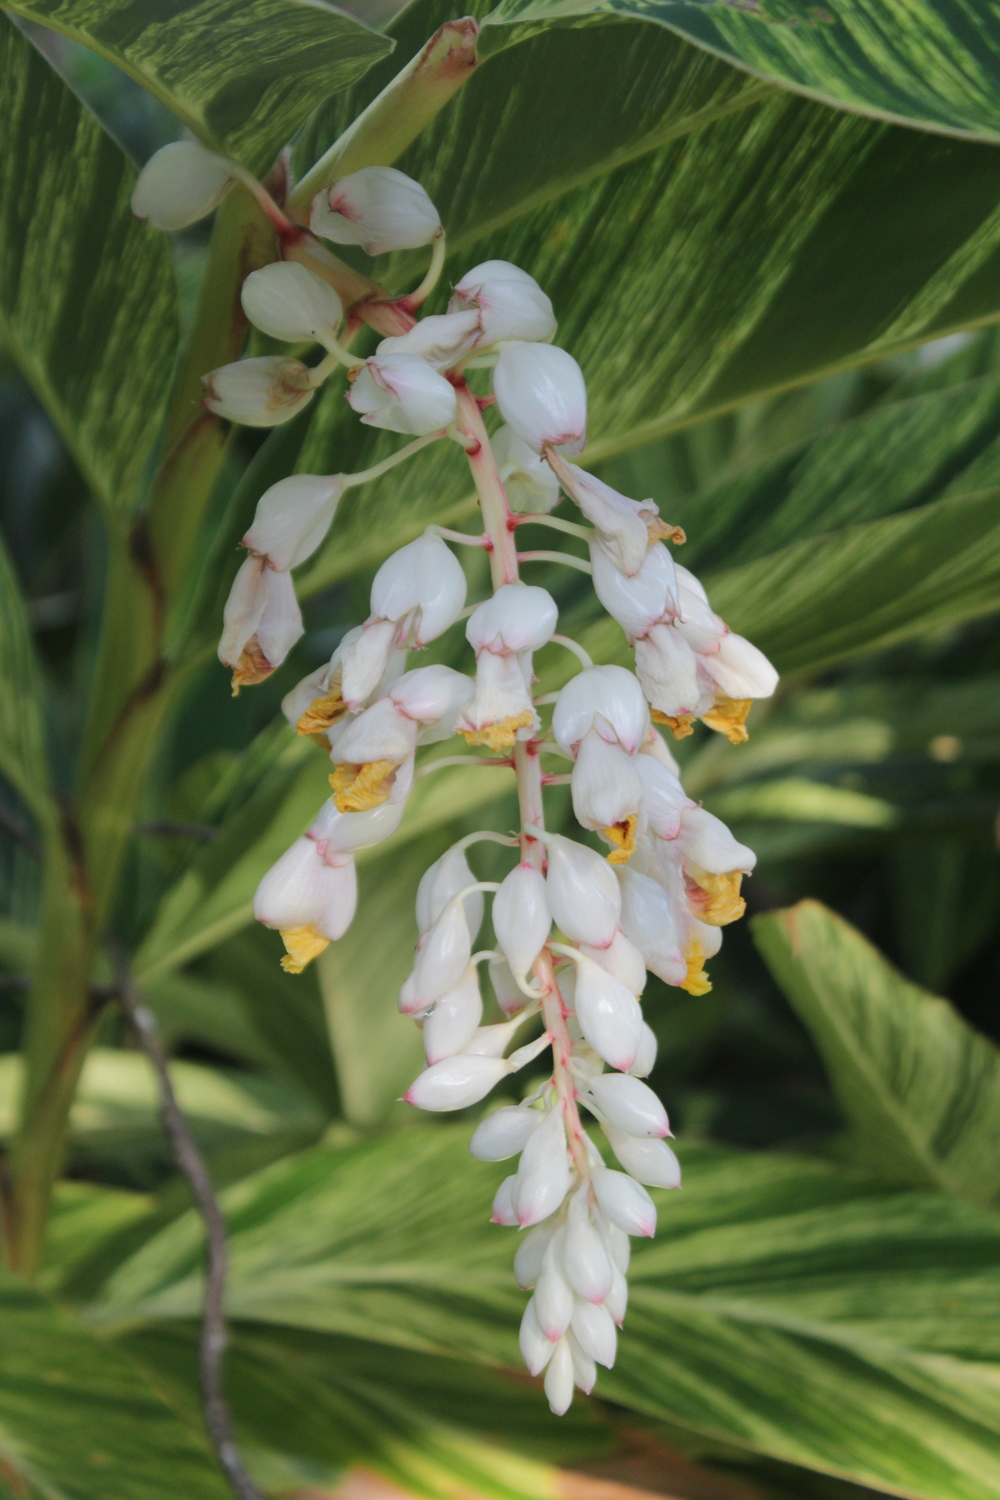 The shell ginger (Alpinia zerumbet) is blooming!